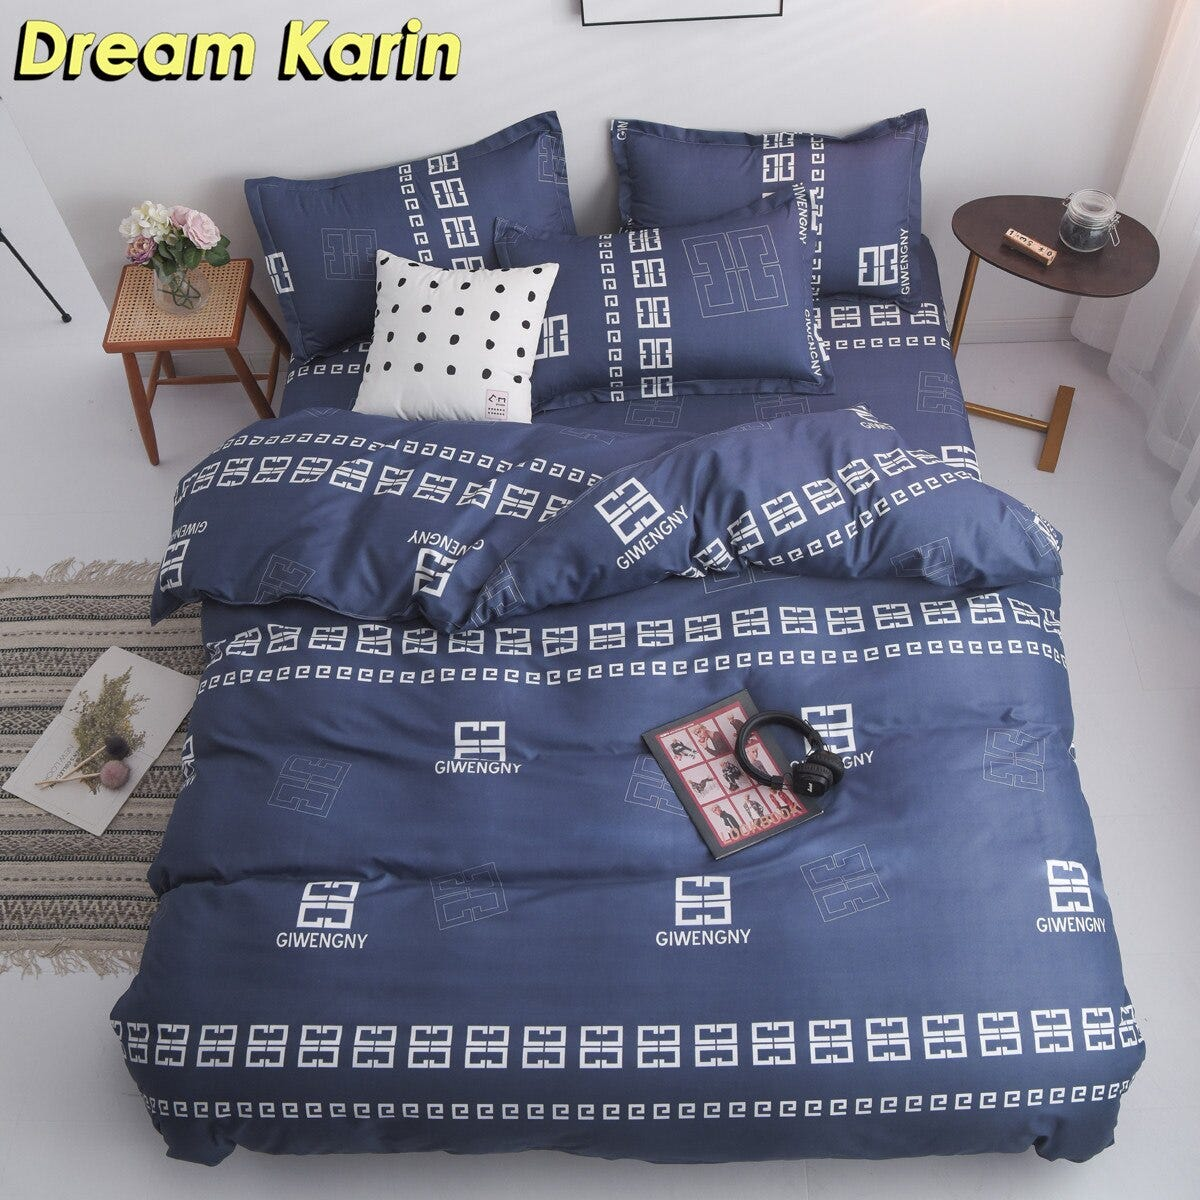 1087148045 Home Textile Brief Duvet Covers Set Nordic Bedding Sets With Pillowcase Fitted Bed Sheets Single Double Queen King Bedclothes Home Garden Home Textile